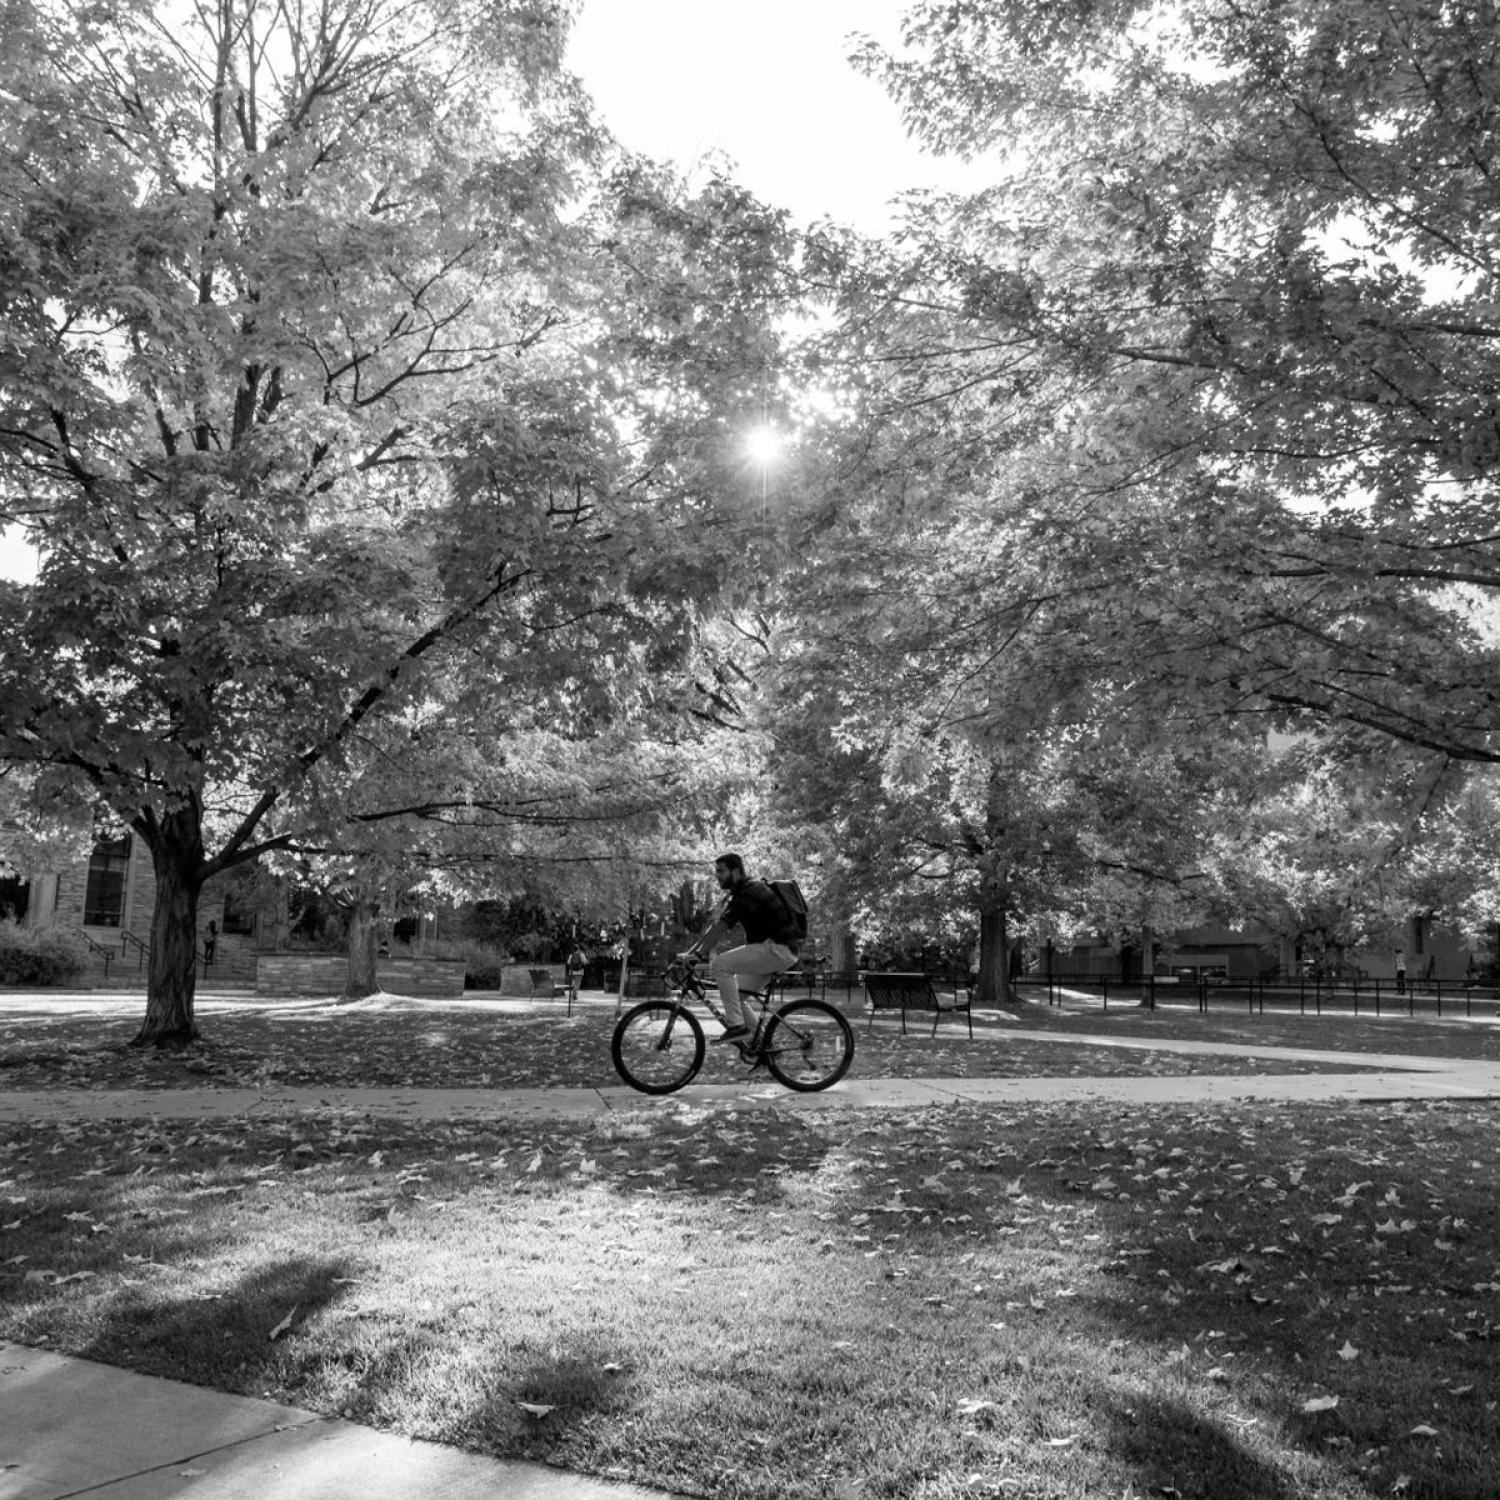 Student on a bike on campus